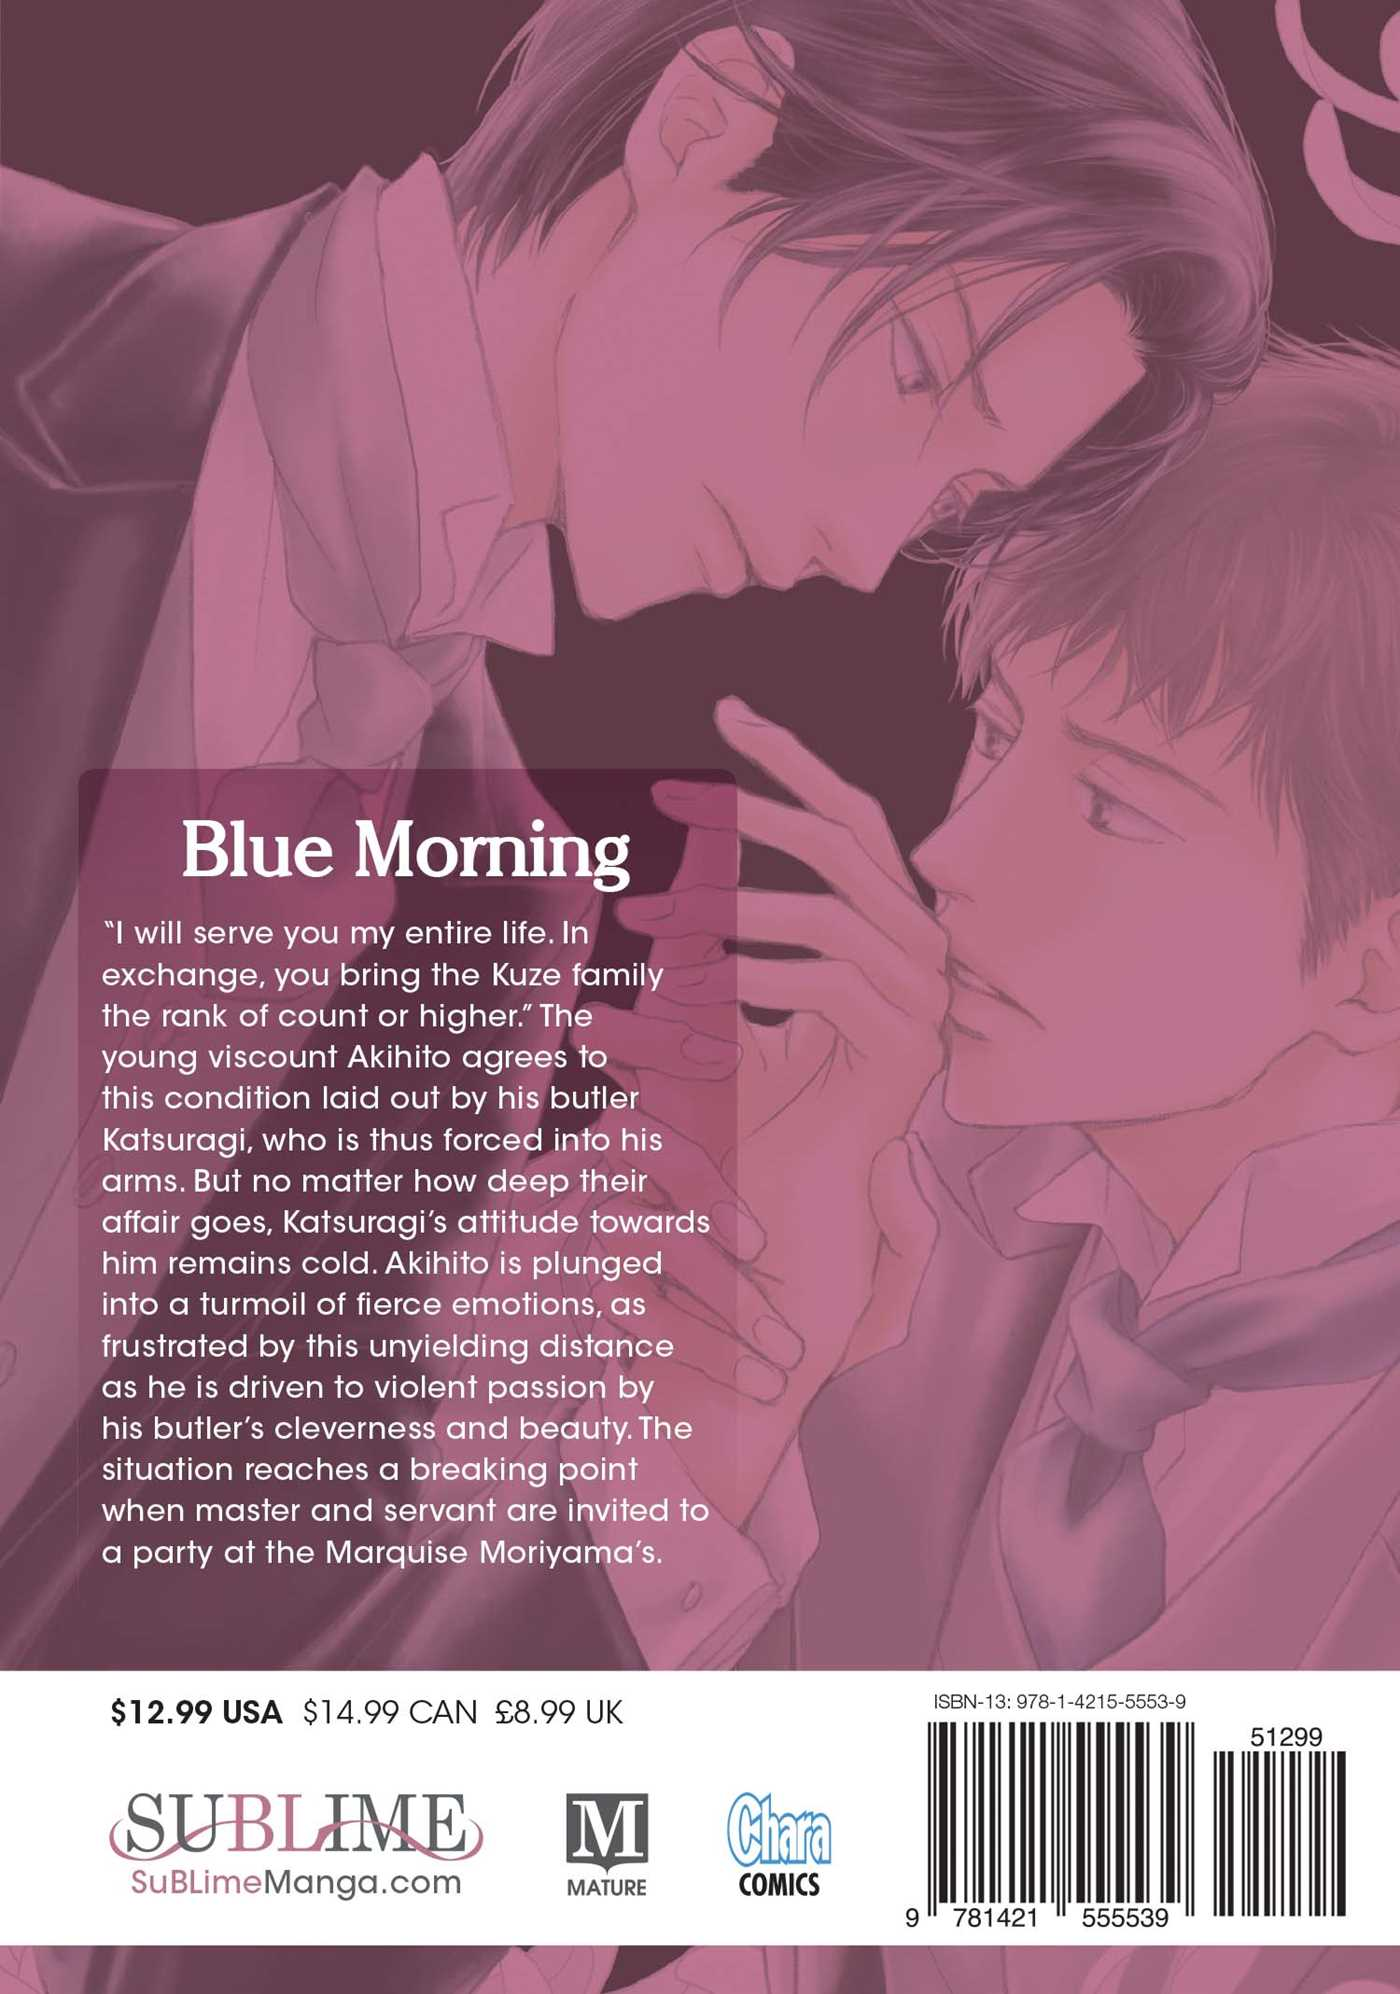 Blue morning vol 2 9781421555539 hr back